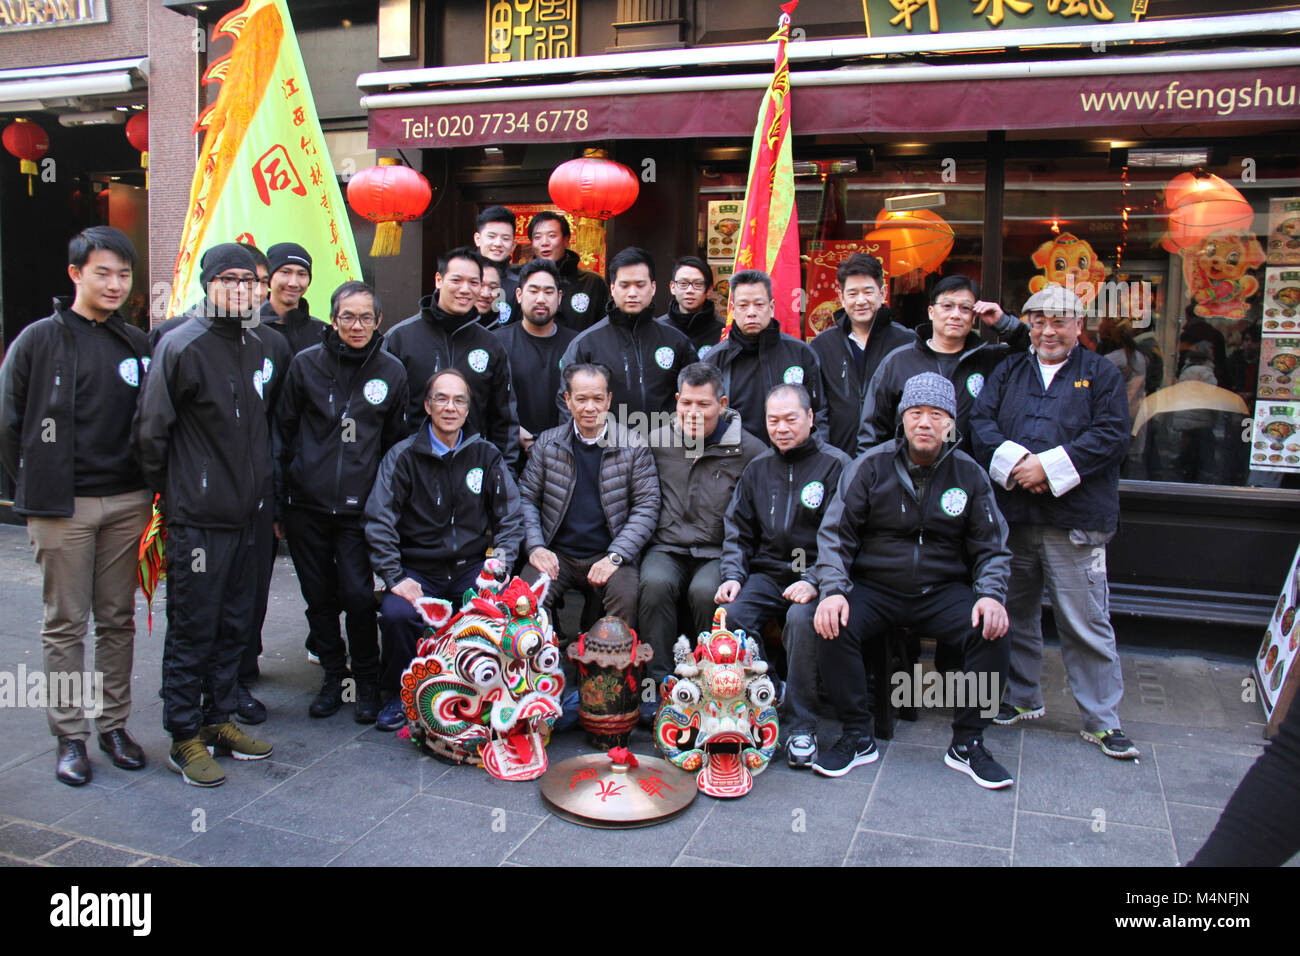 London, UK. 17th Feb, 2018. Members of a Chinese Organisation pose for photos in China Town London on 17 February - Stock Image